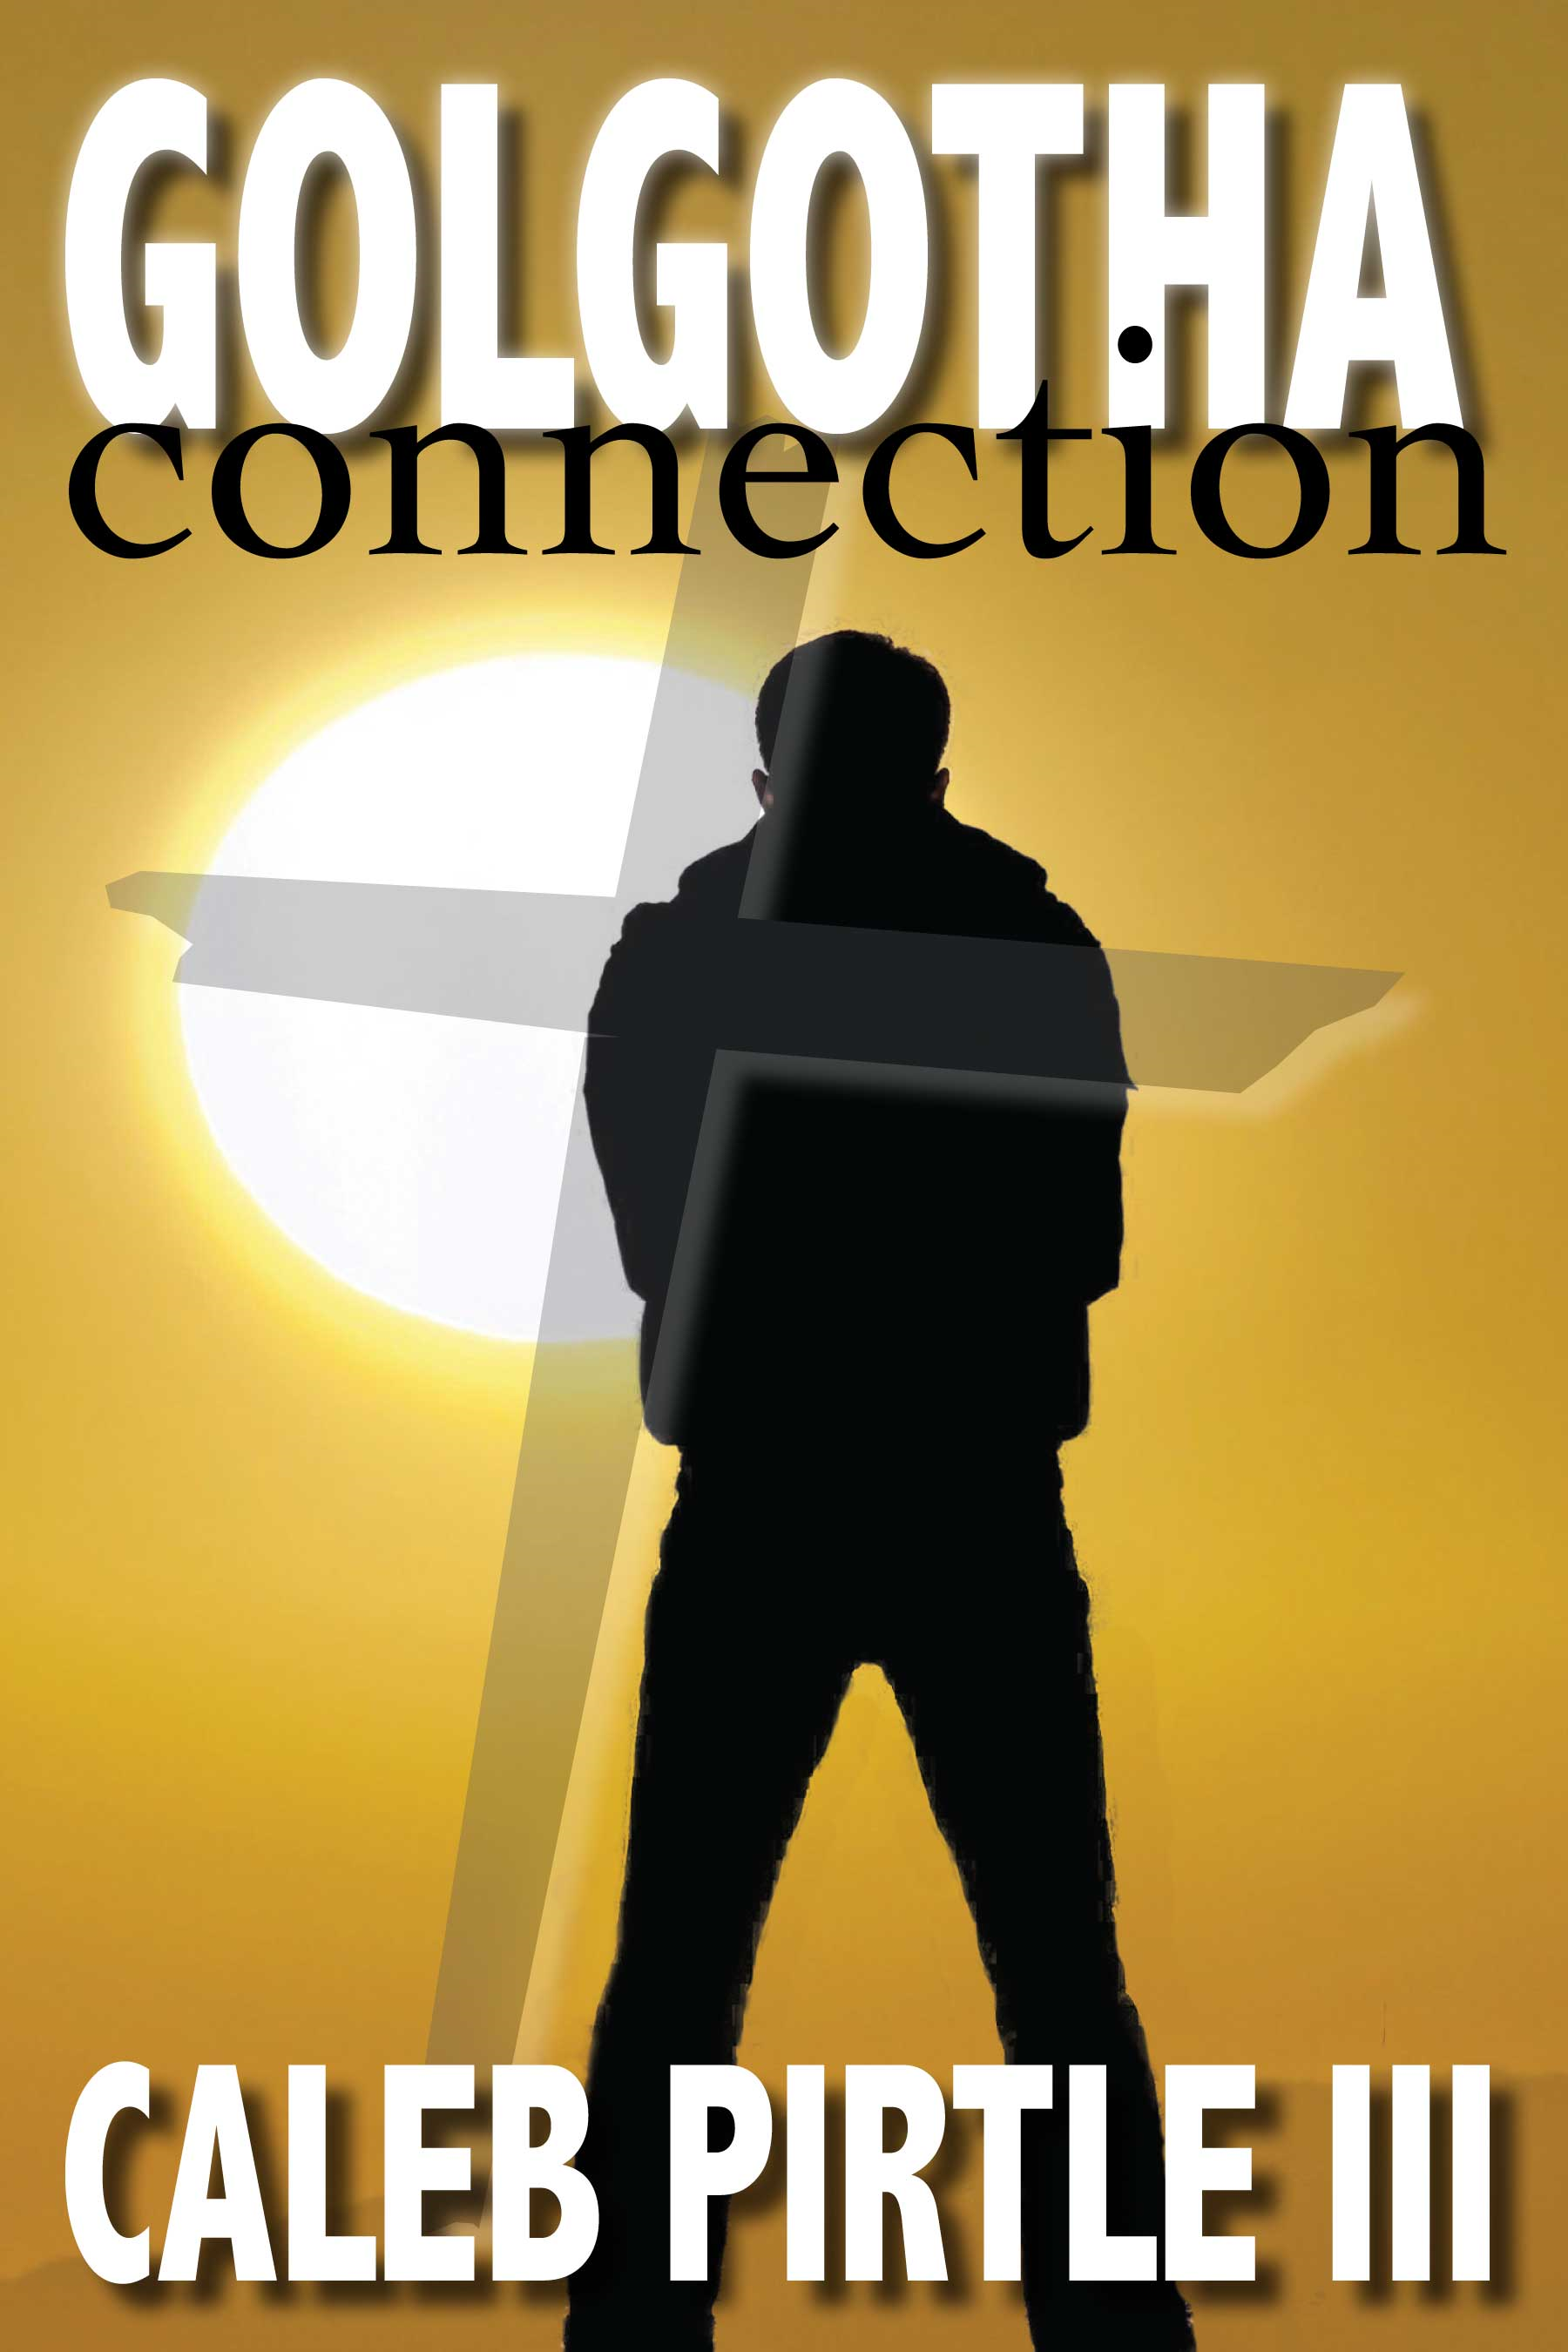 Golgotha Connection